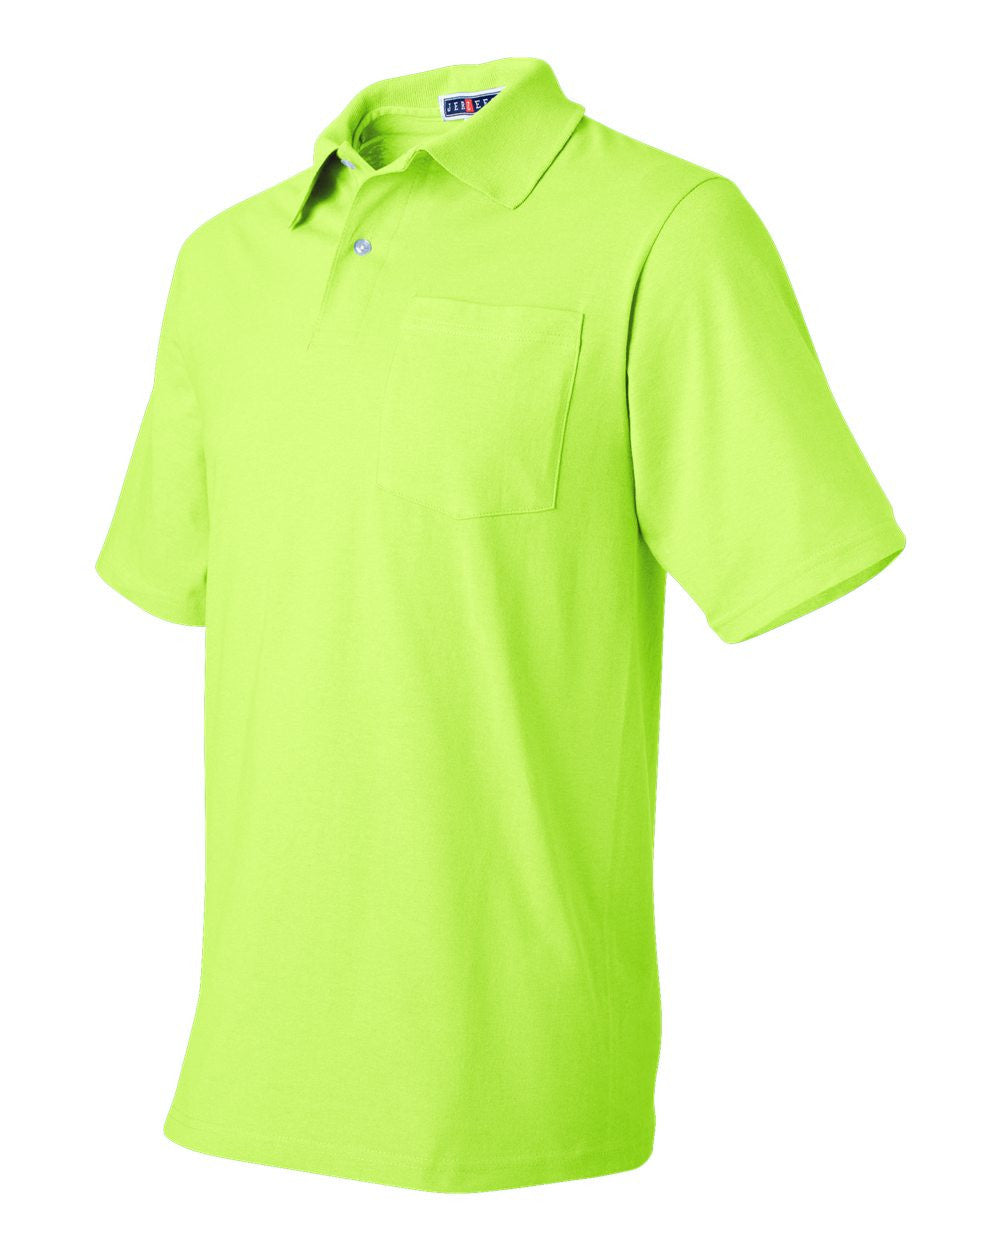 Pocket Spot Shield Jersey Polos by Jerseez - Discountedrack.com